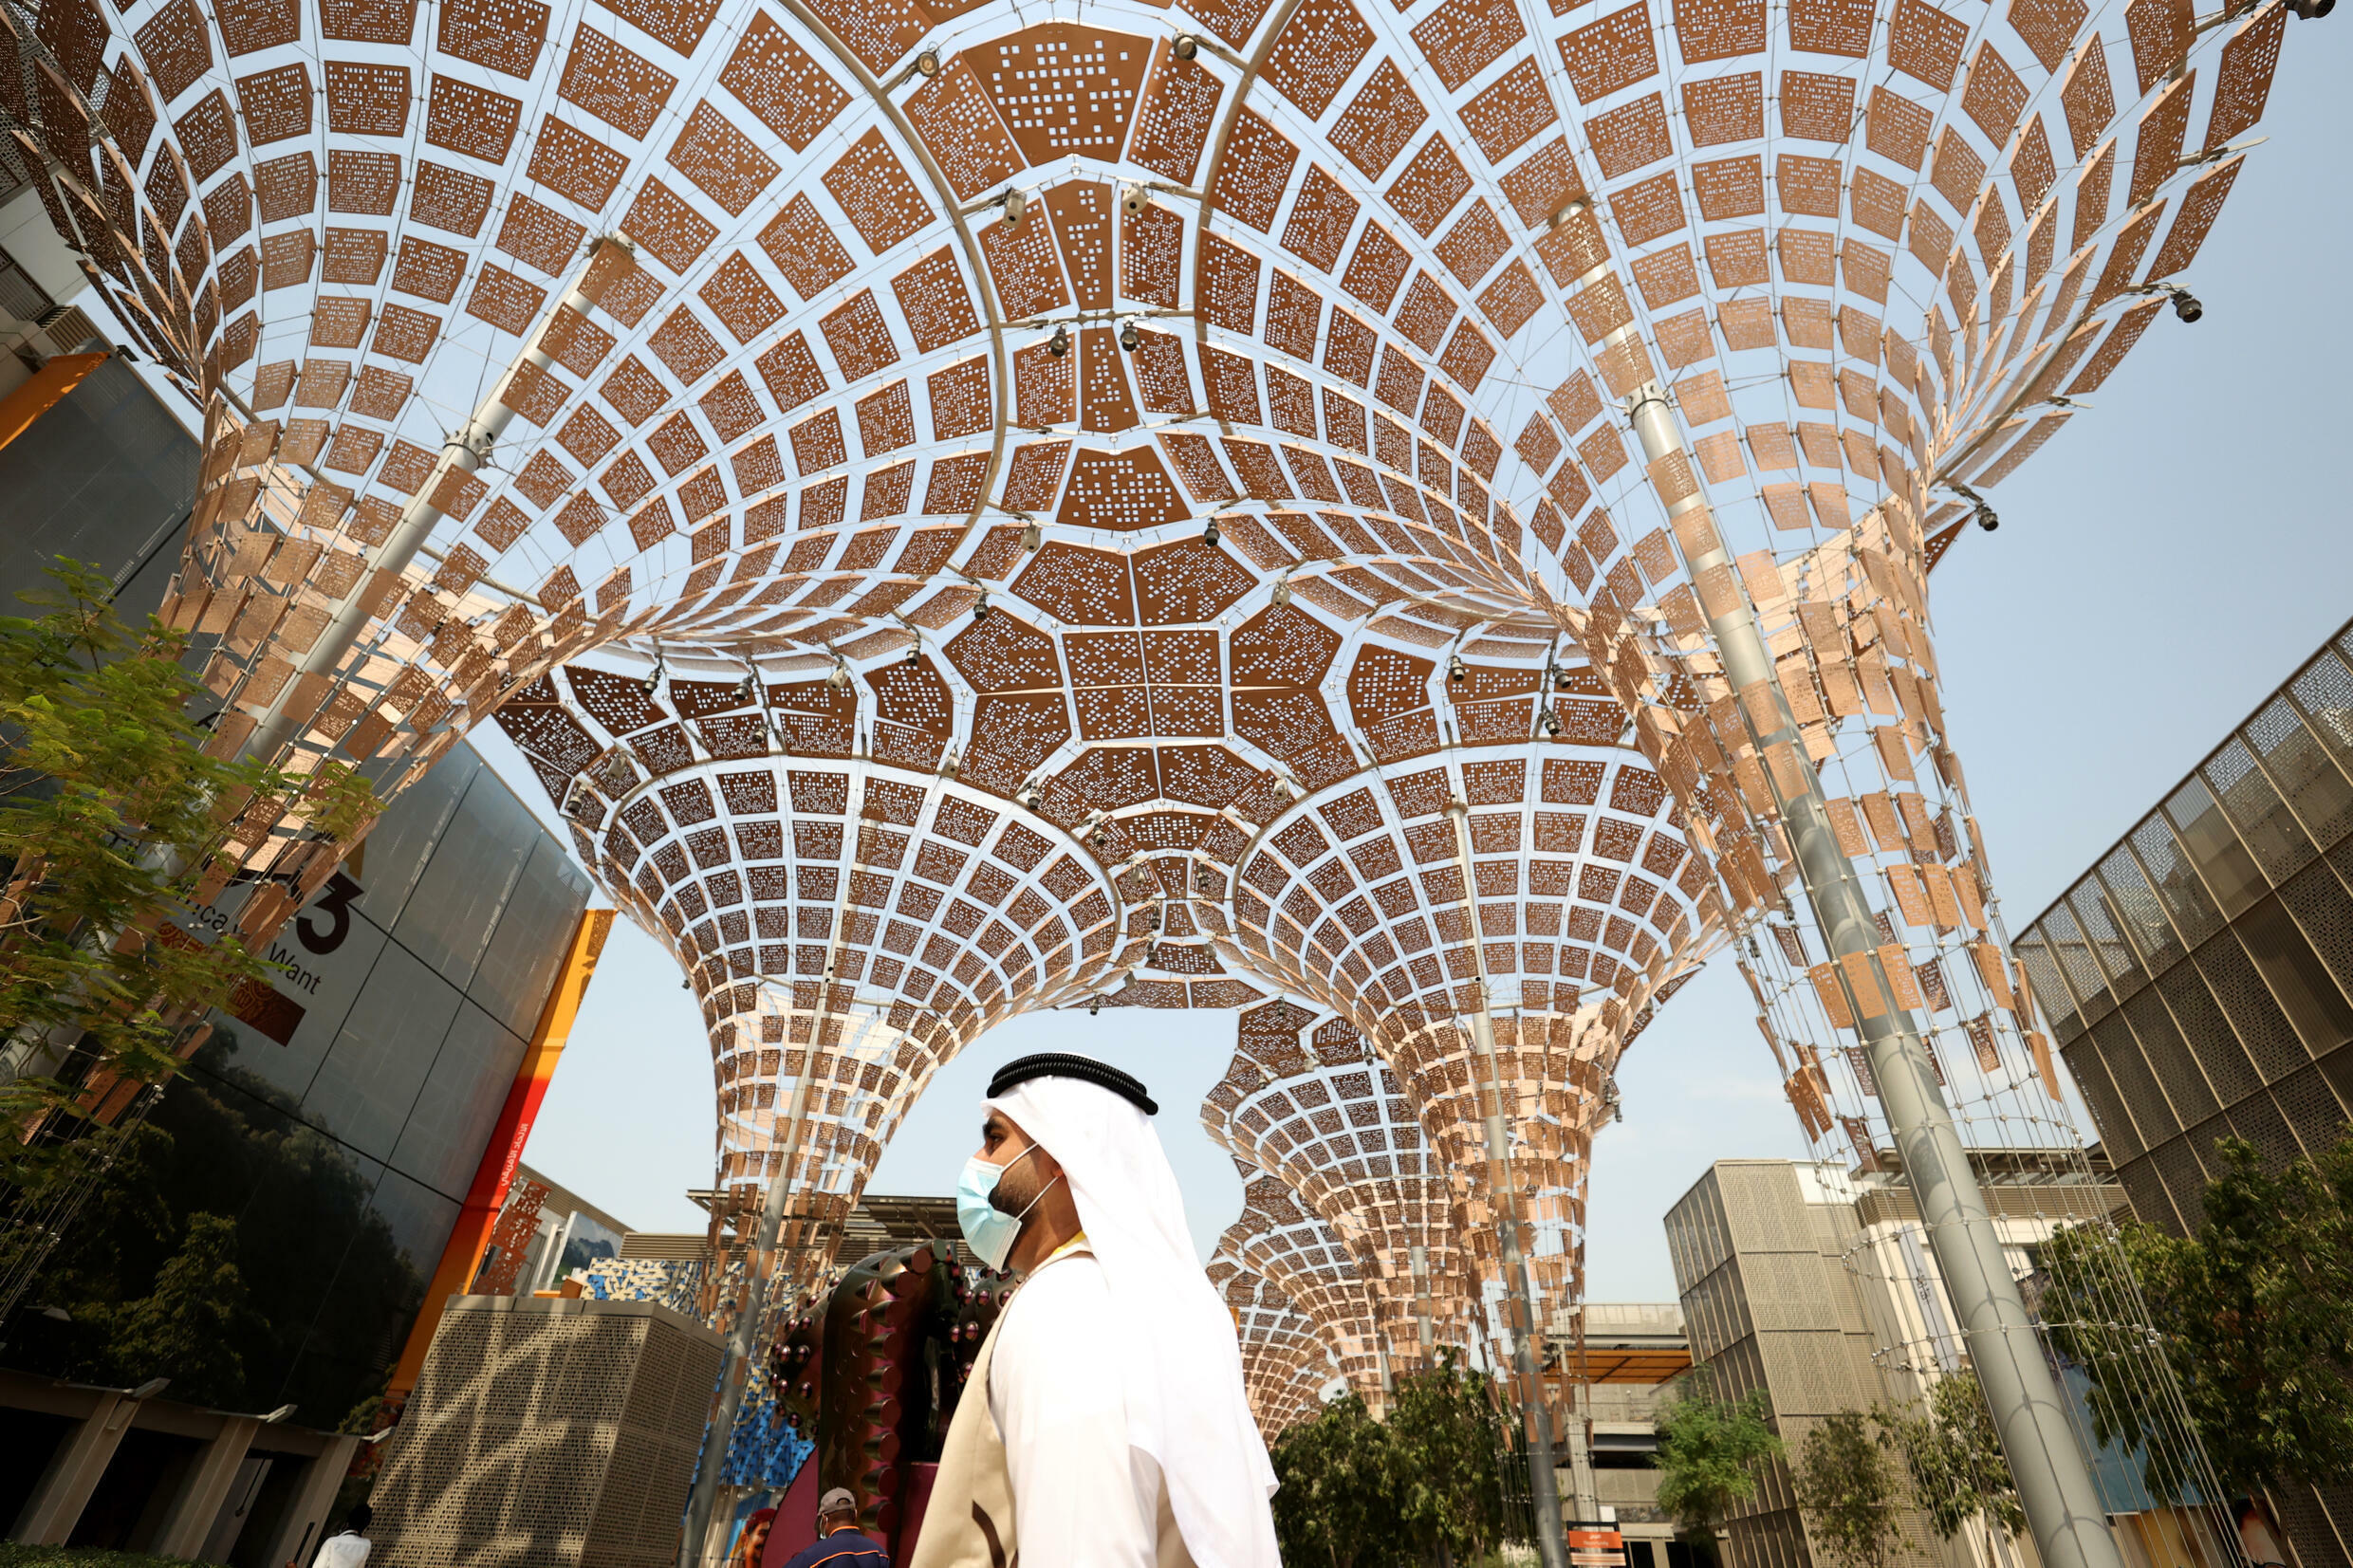 More than 200,000 workers built the huge Dubai Expo 2020 site